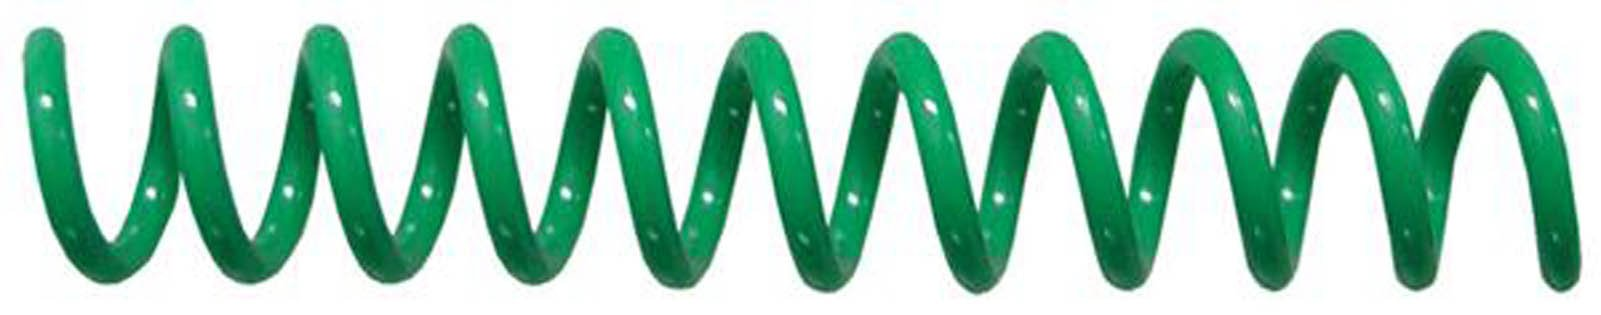 7mm (9/32) Green Coil Bindings (Qty 100) Color: Green, Model: , Office/School Supply Store